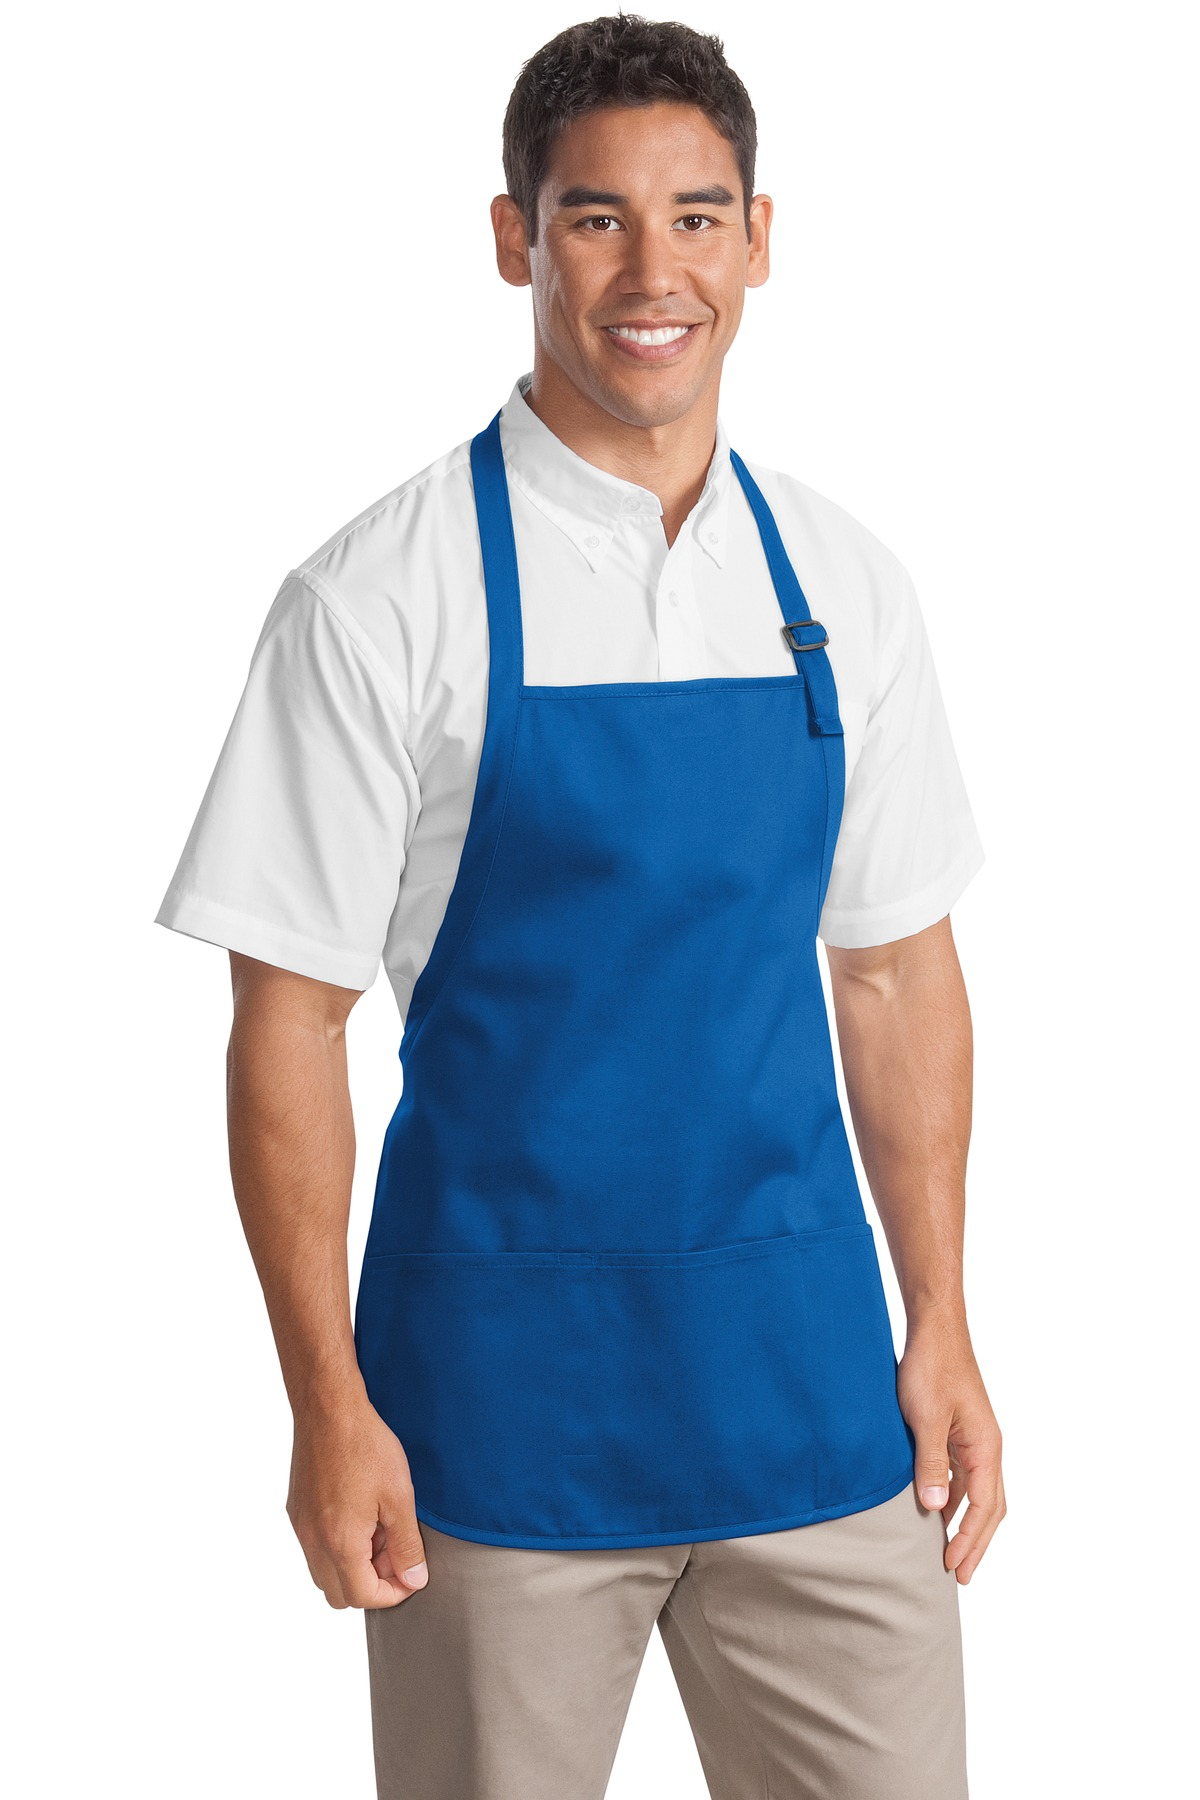 Port Authority ®  Medium-Length Apron with Pouch Pockets.  A510 - Royal